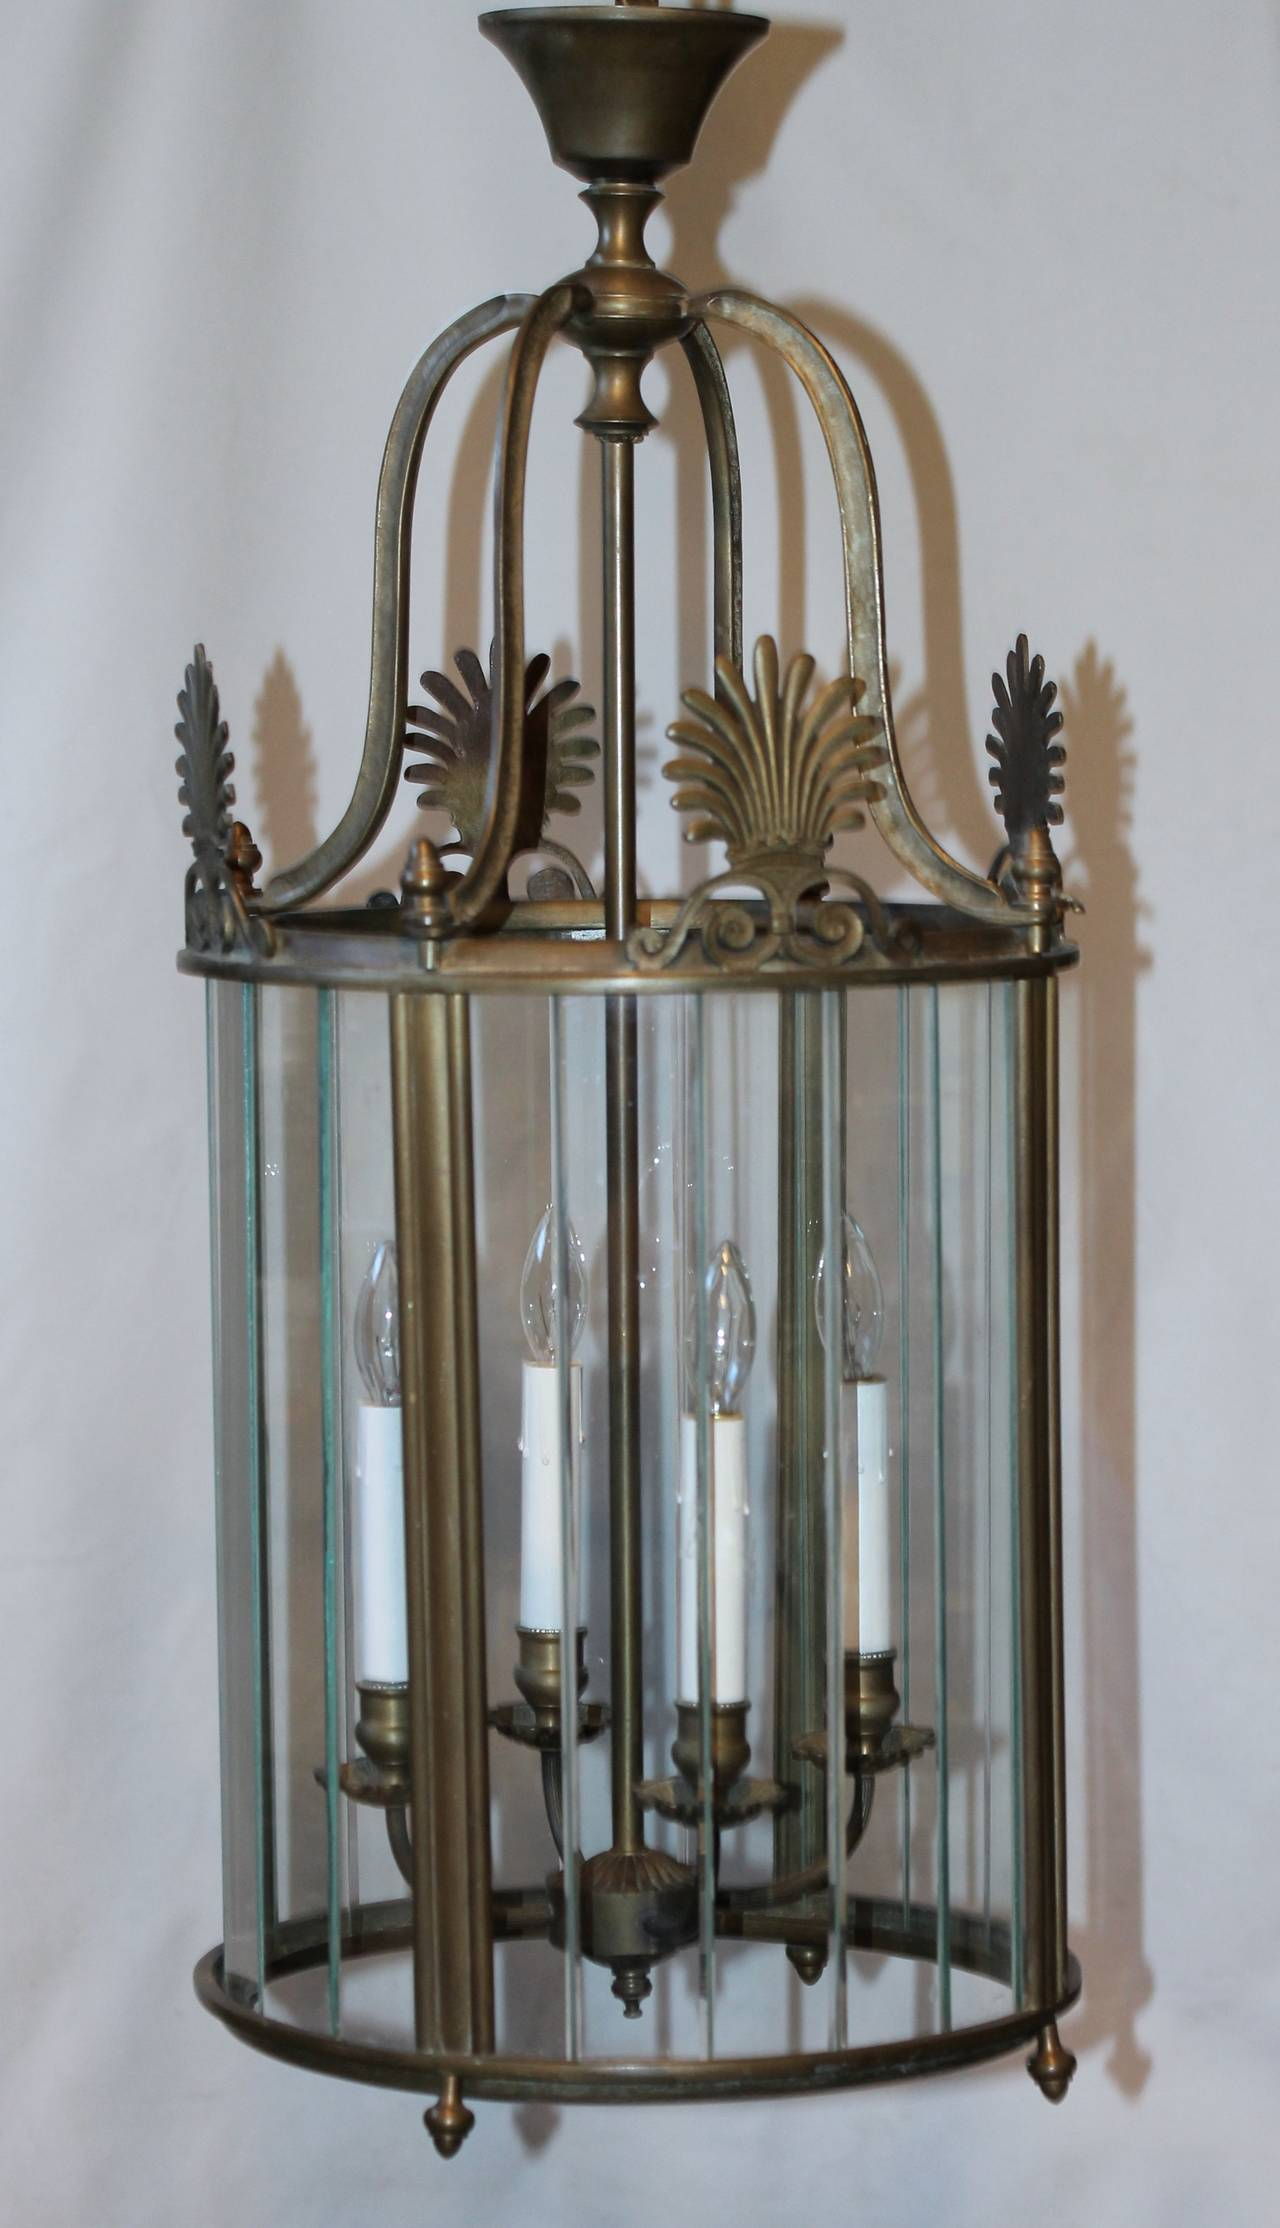 Large Italian Neoclassic Bronze Hall Lantern Pendant Light In Good Condition For Sale In Dallas, TX